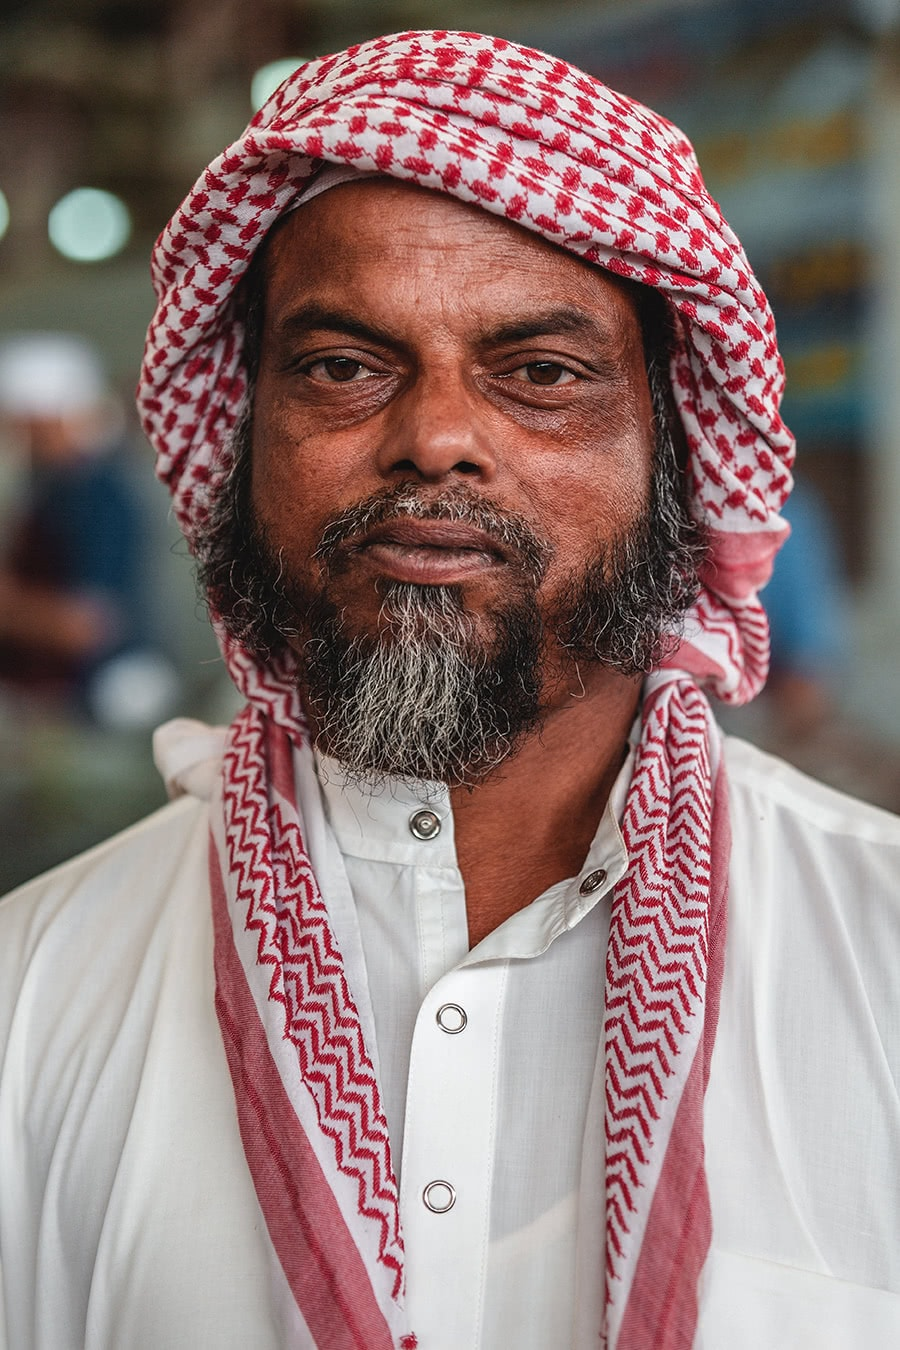 Bangladeshi worker in Dubai.